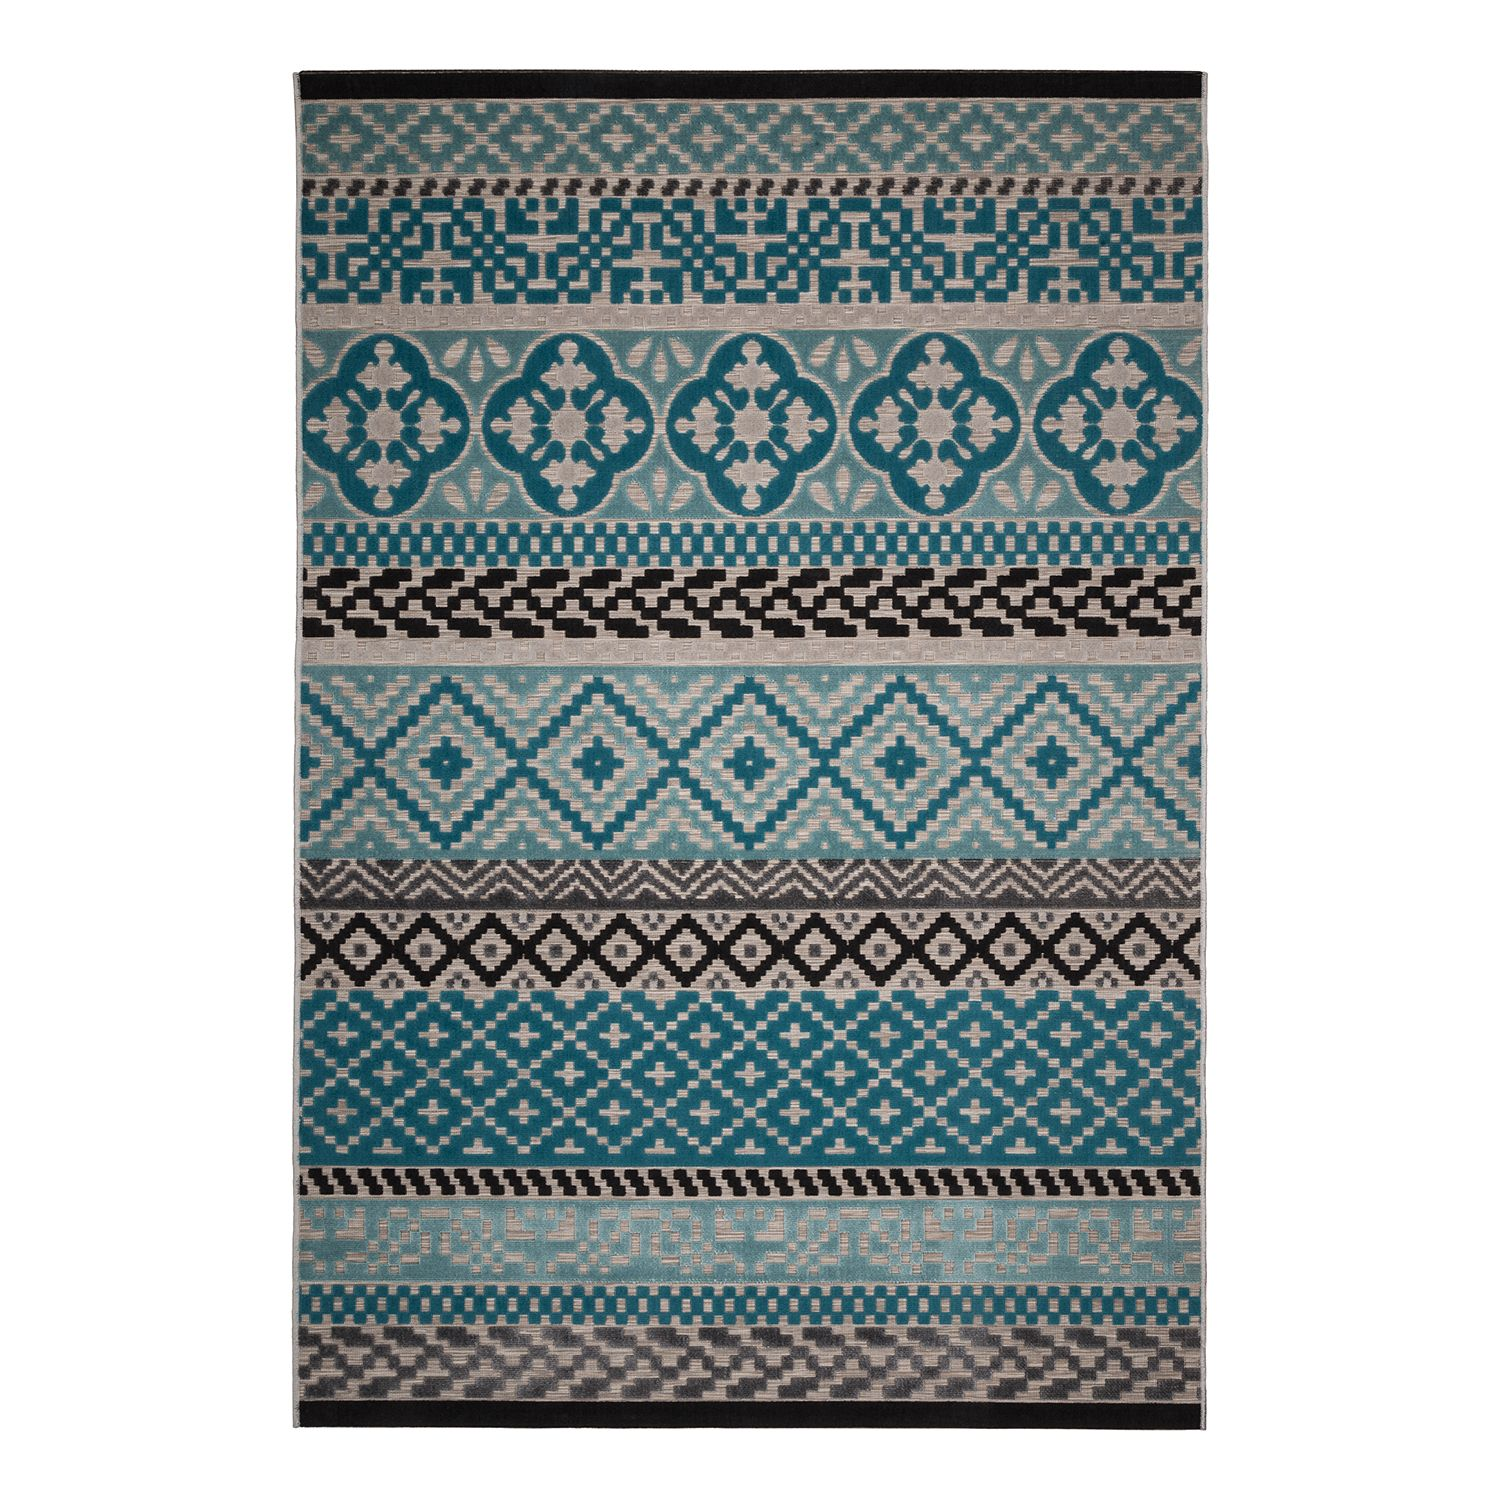 tapis flow i tissu turquoise beige 120 x 170 cm ars manufacti le fait main. Black Bedroom Furniture Sets. Home Design Ideas